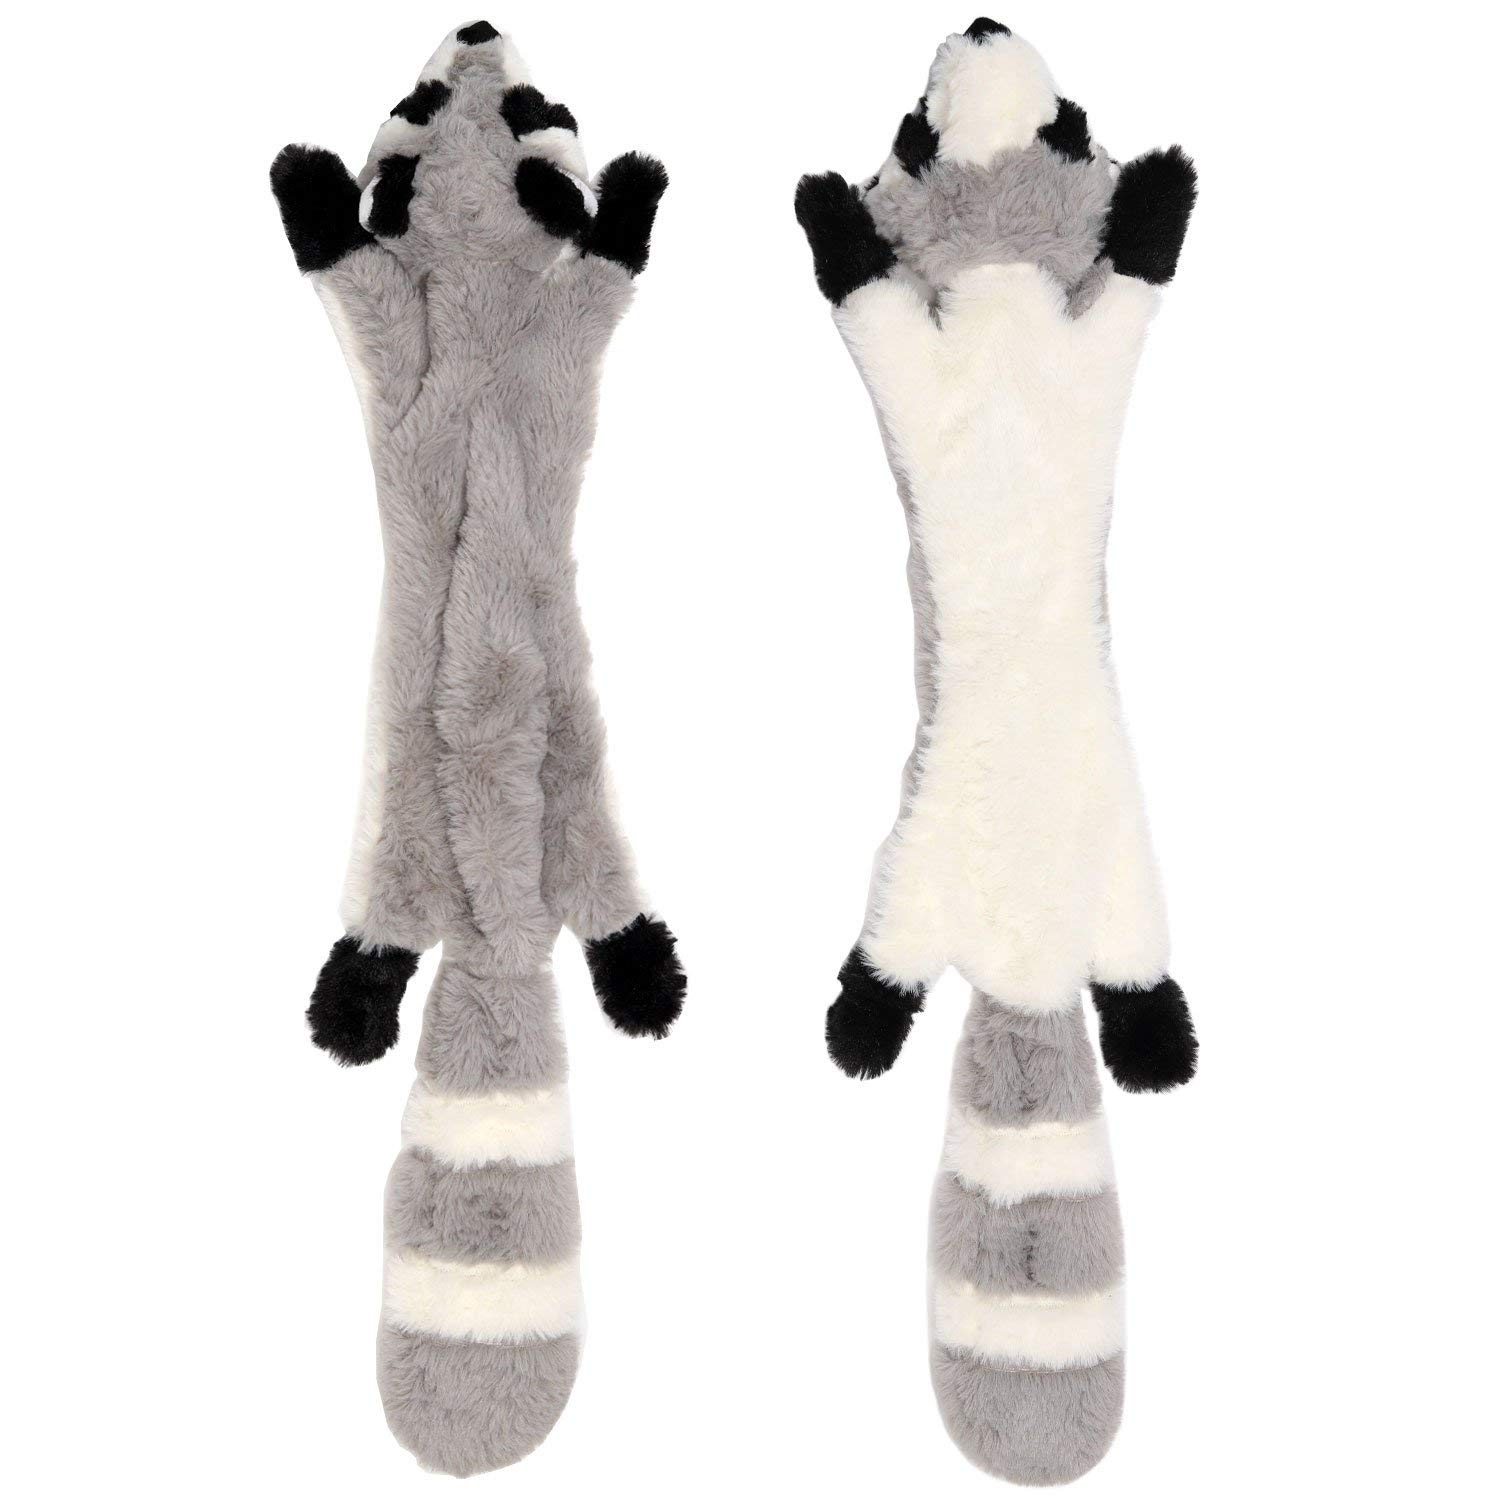 Stuffingless Dog Toys with Squeaker, Durable No Stuffing Dog Toys with Squeakers Stuffingless Tough Raccoon Dog Plush Chew Toys for Large Dogs Hunting 24-inch